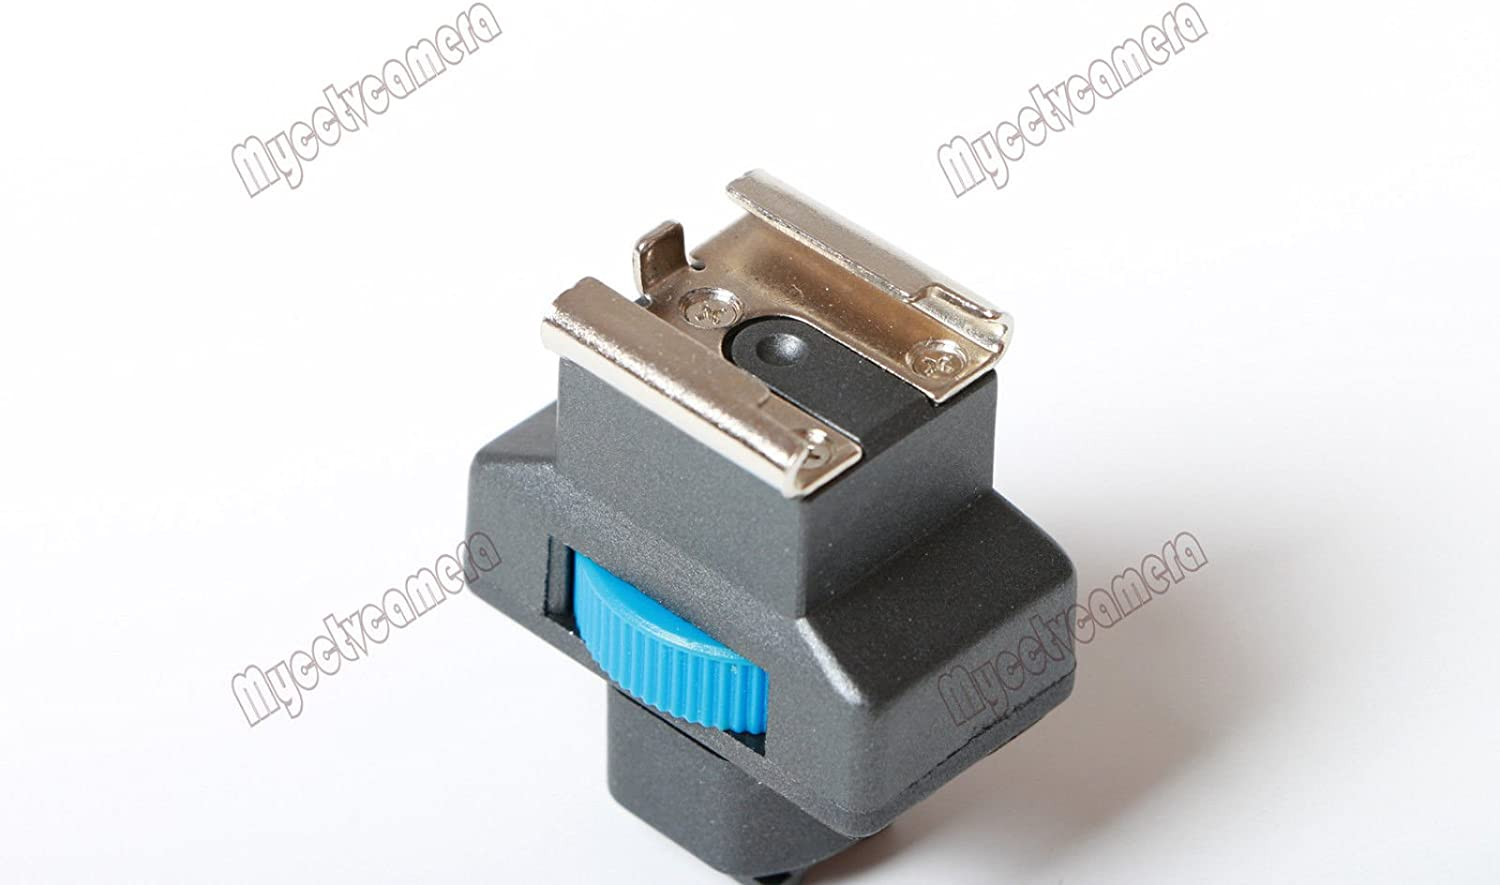 Standard Hot Shoe to Mini Hot Shoe Mount Converter Adapter for Sony DV Camcorder